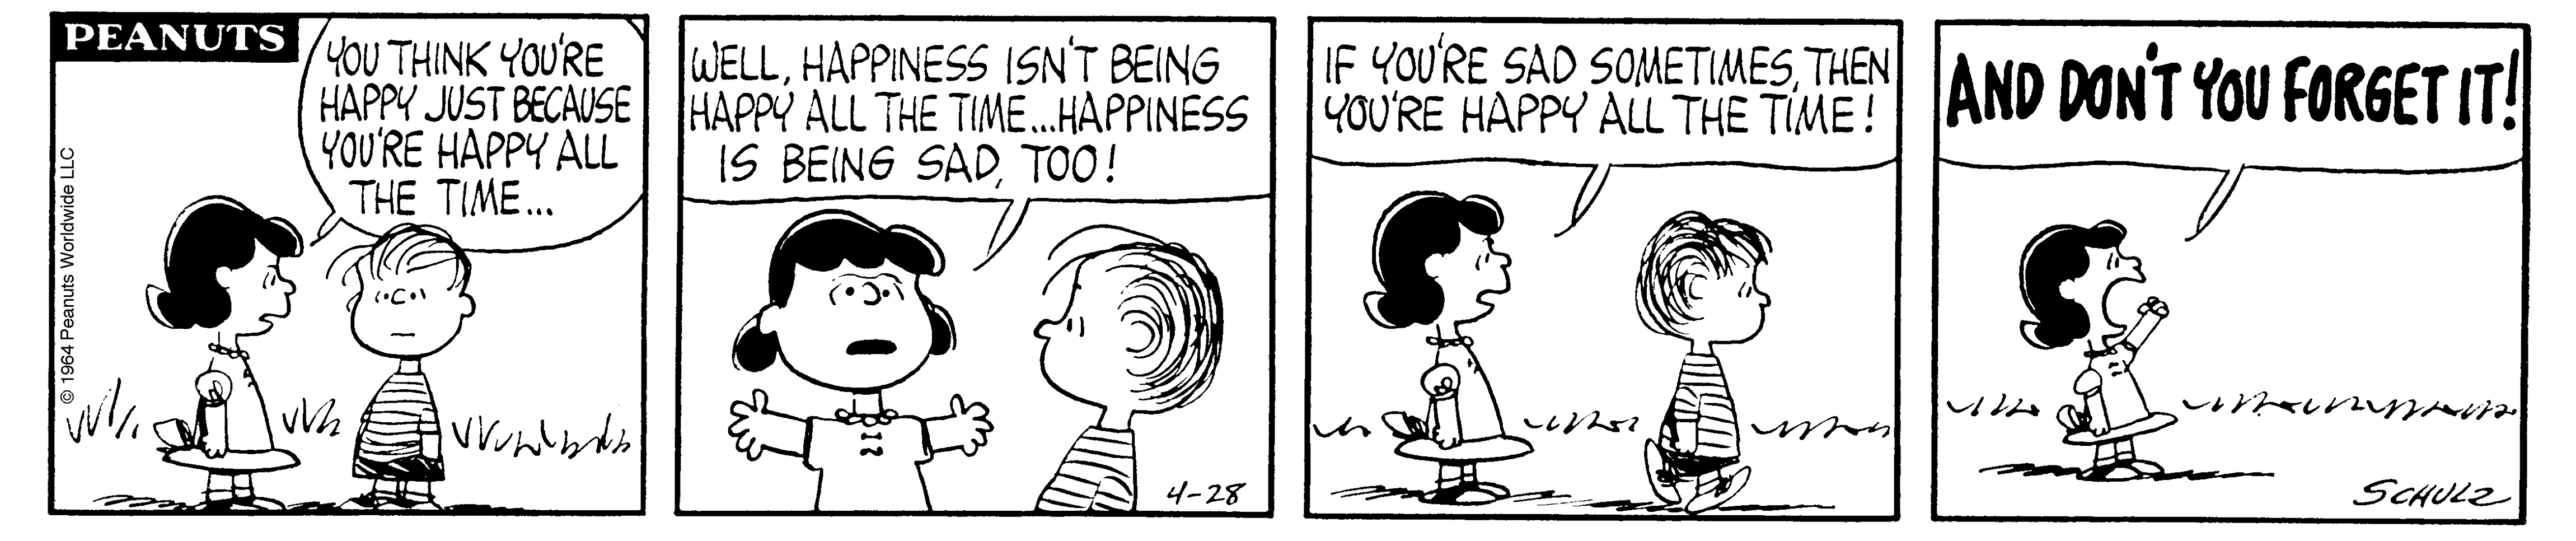 A black and white comic strip of a boy and girl talking.